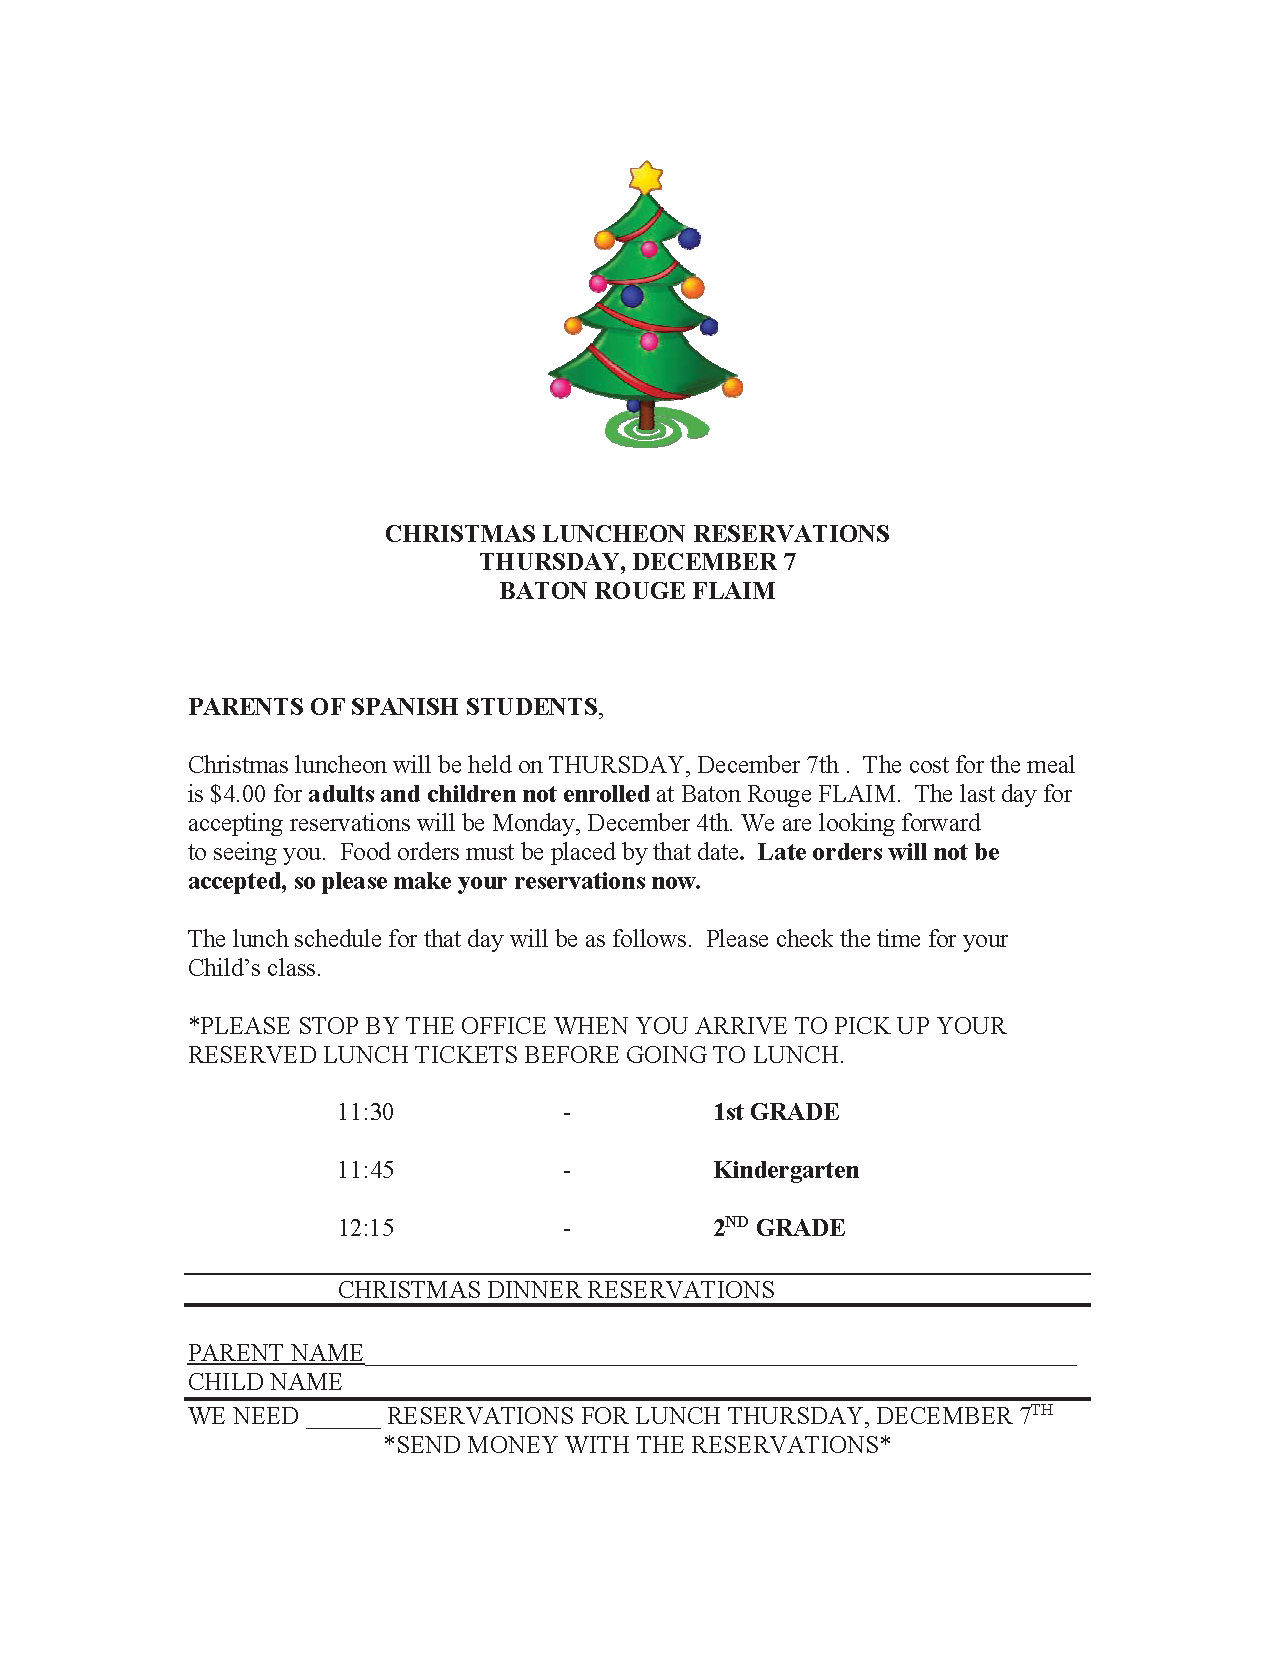 CHRISTMAS RESERVATION BRFP (1).png